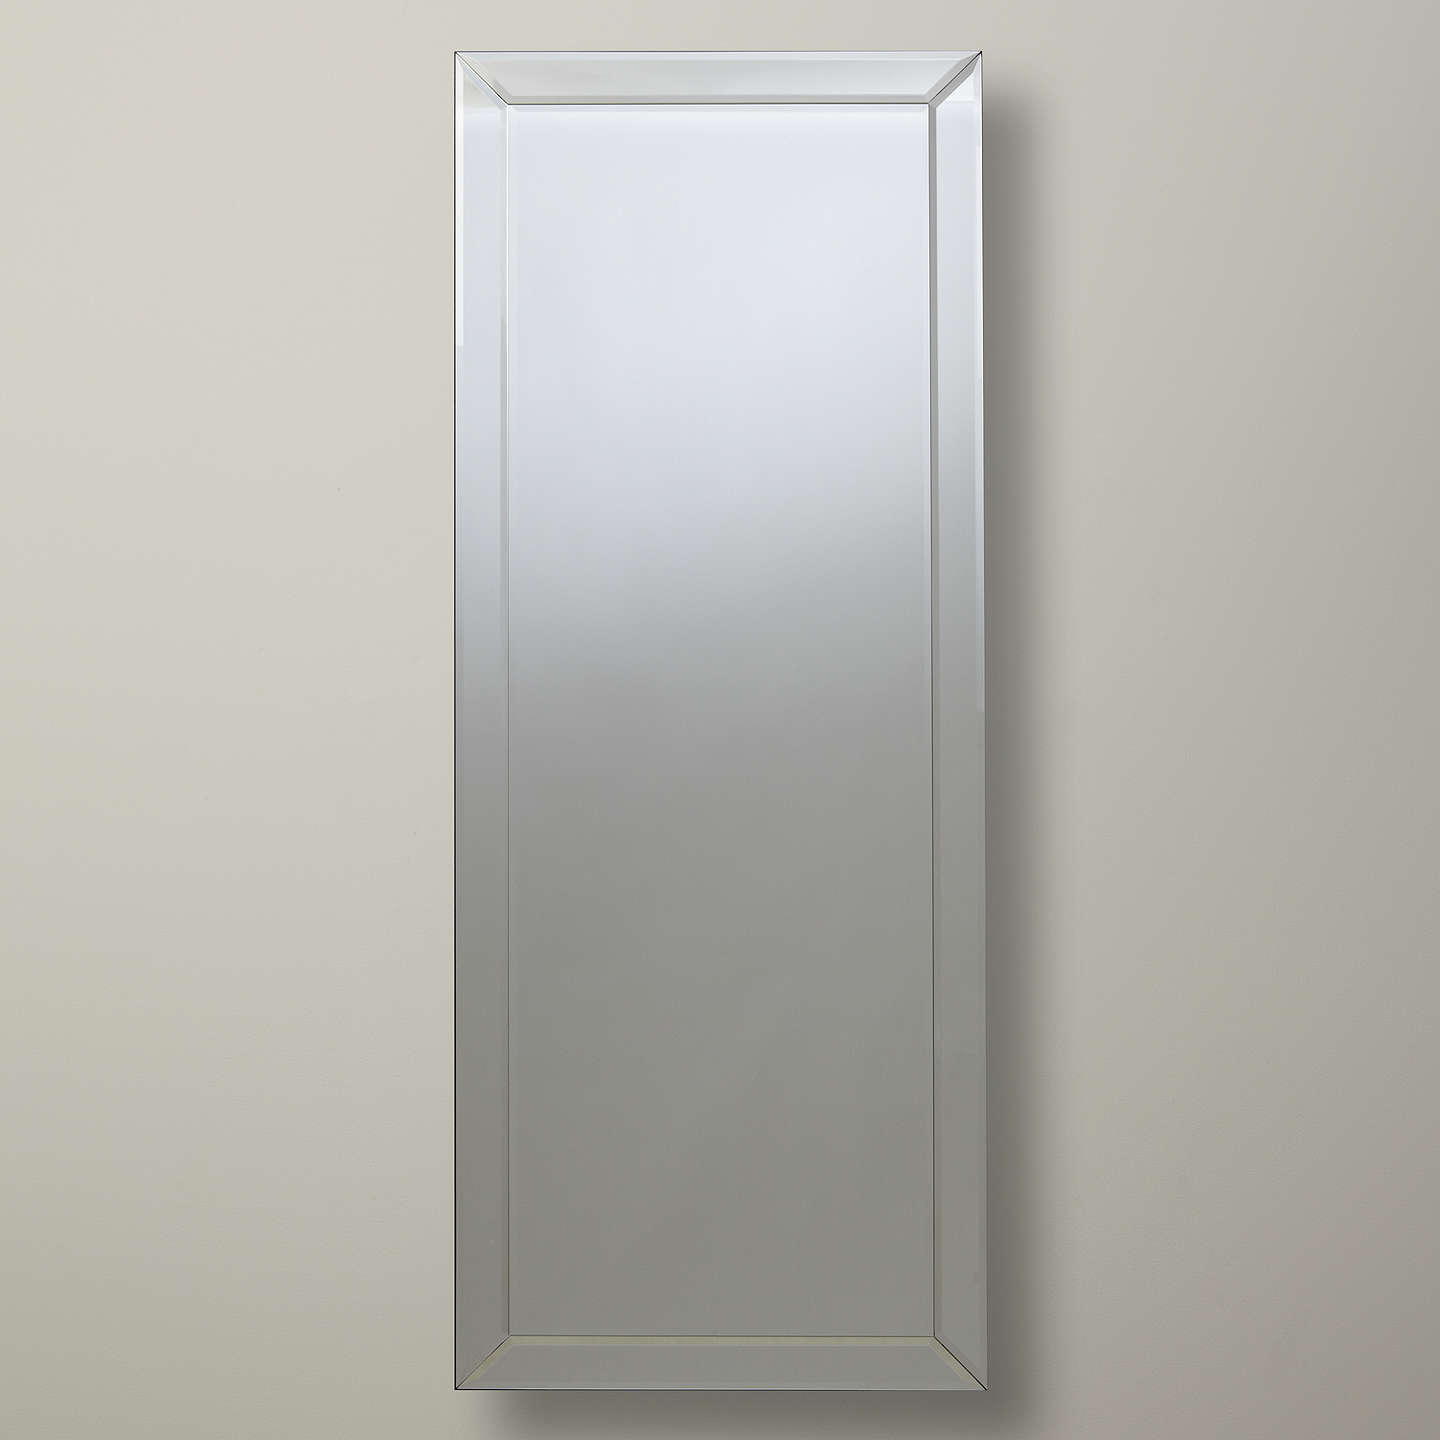 John lewis bevel simple mirror large 150 x 60cm at john for Miroir 150 x 60